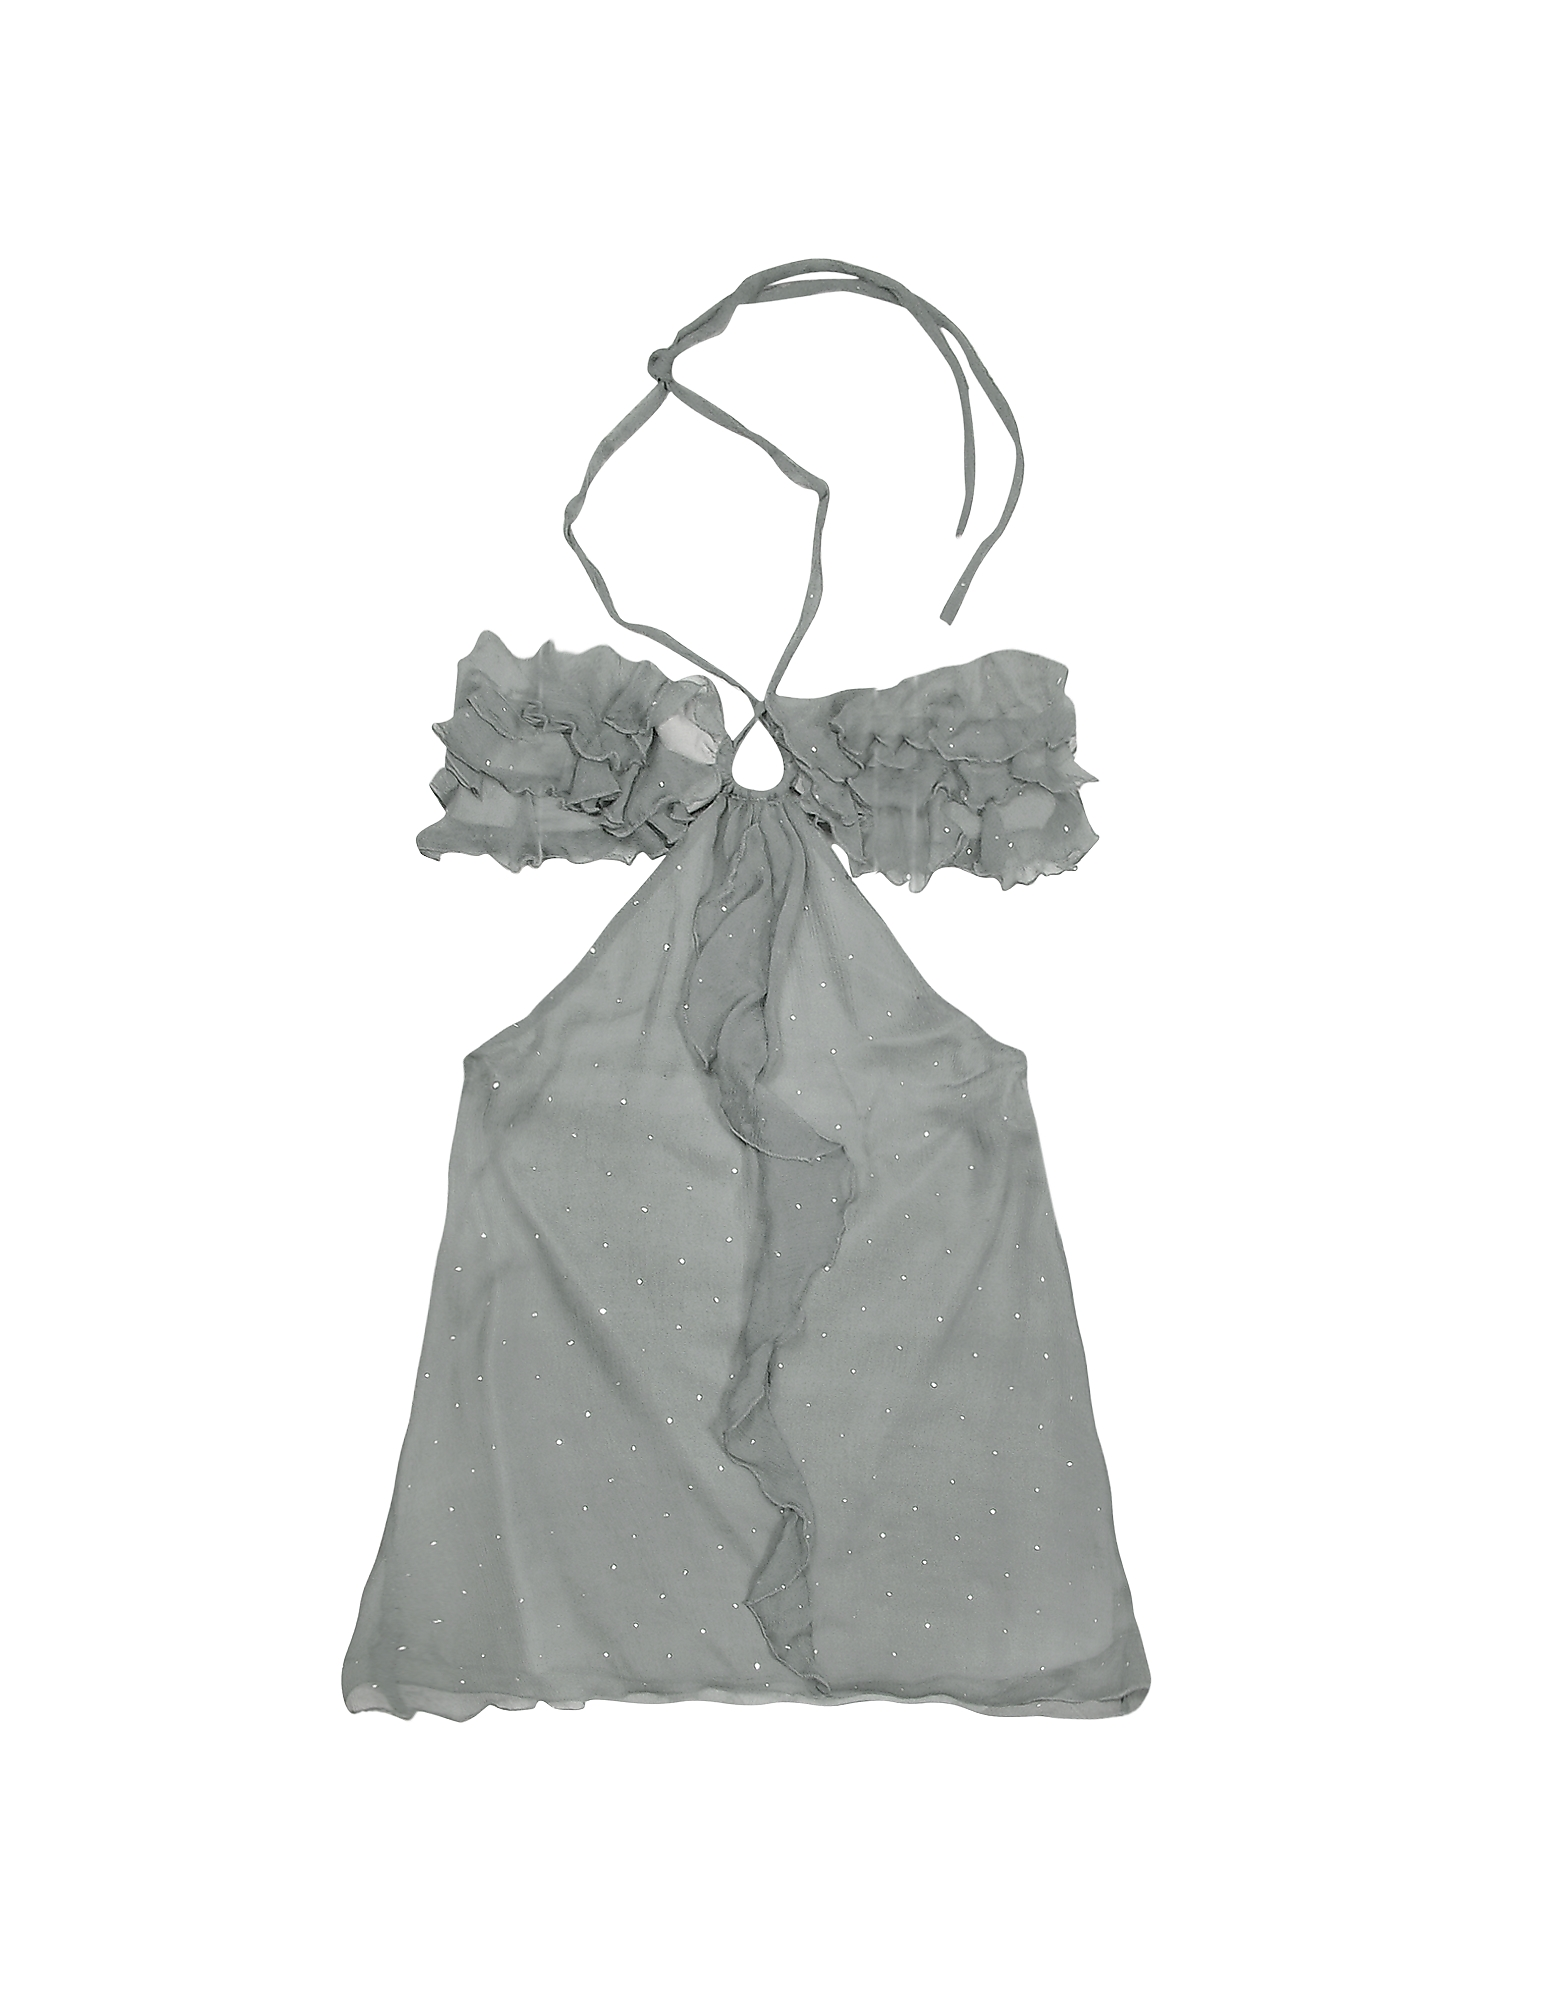 Image of Hafize Ozbudak Designer Tops & Co, Gray Ruched Front Silk Crepe Halter Top